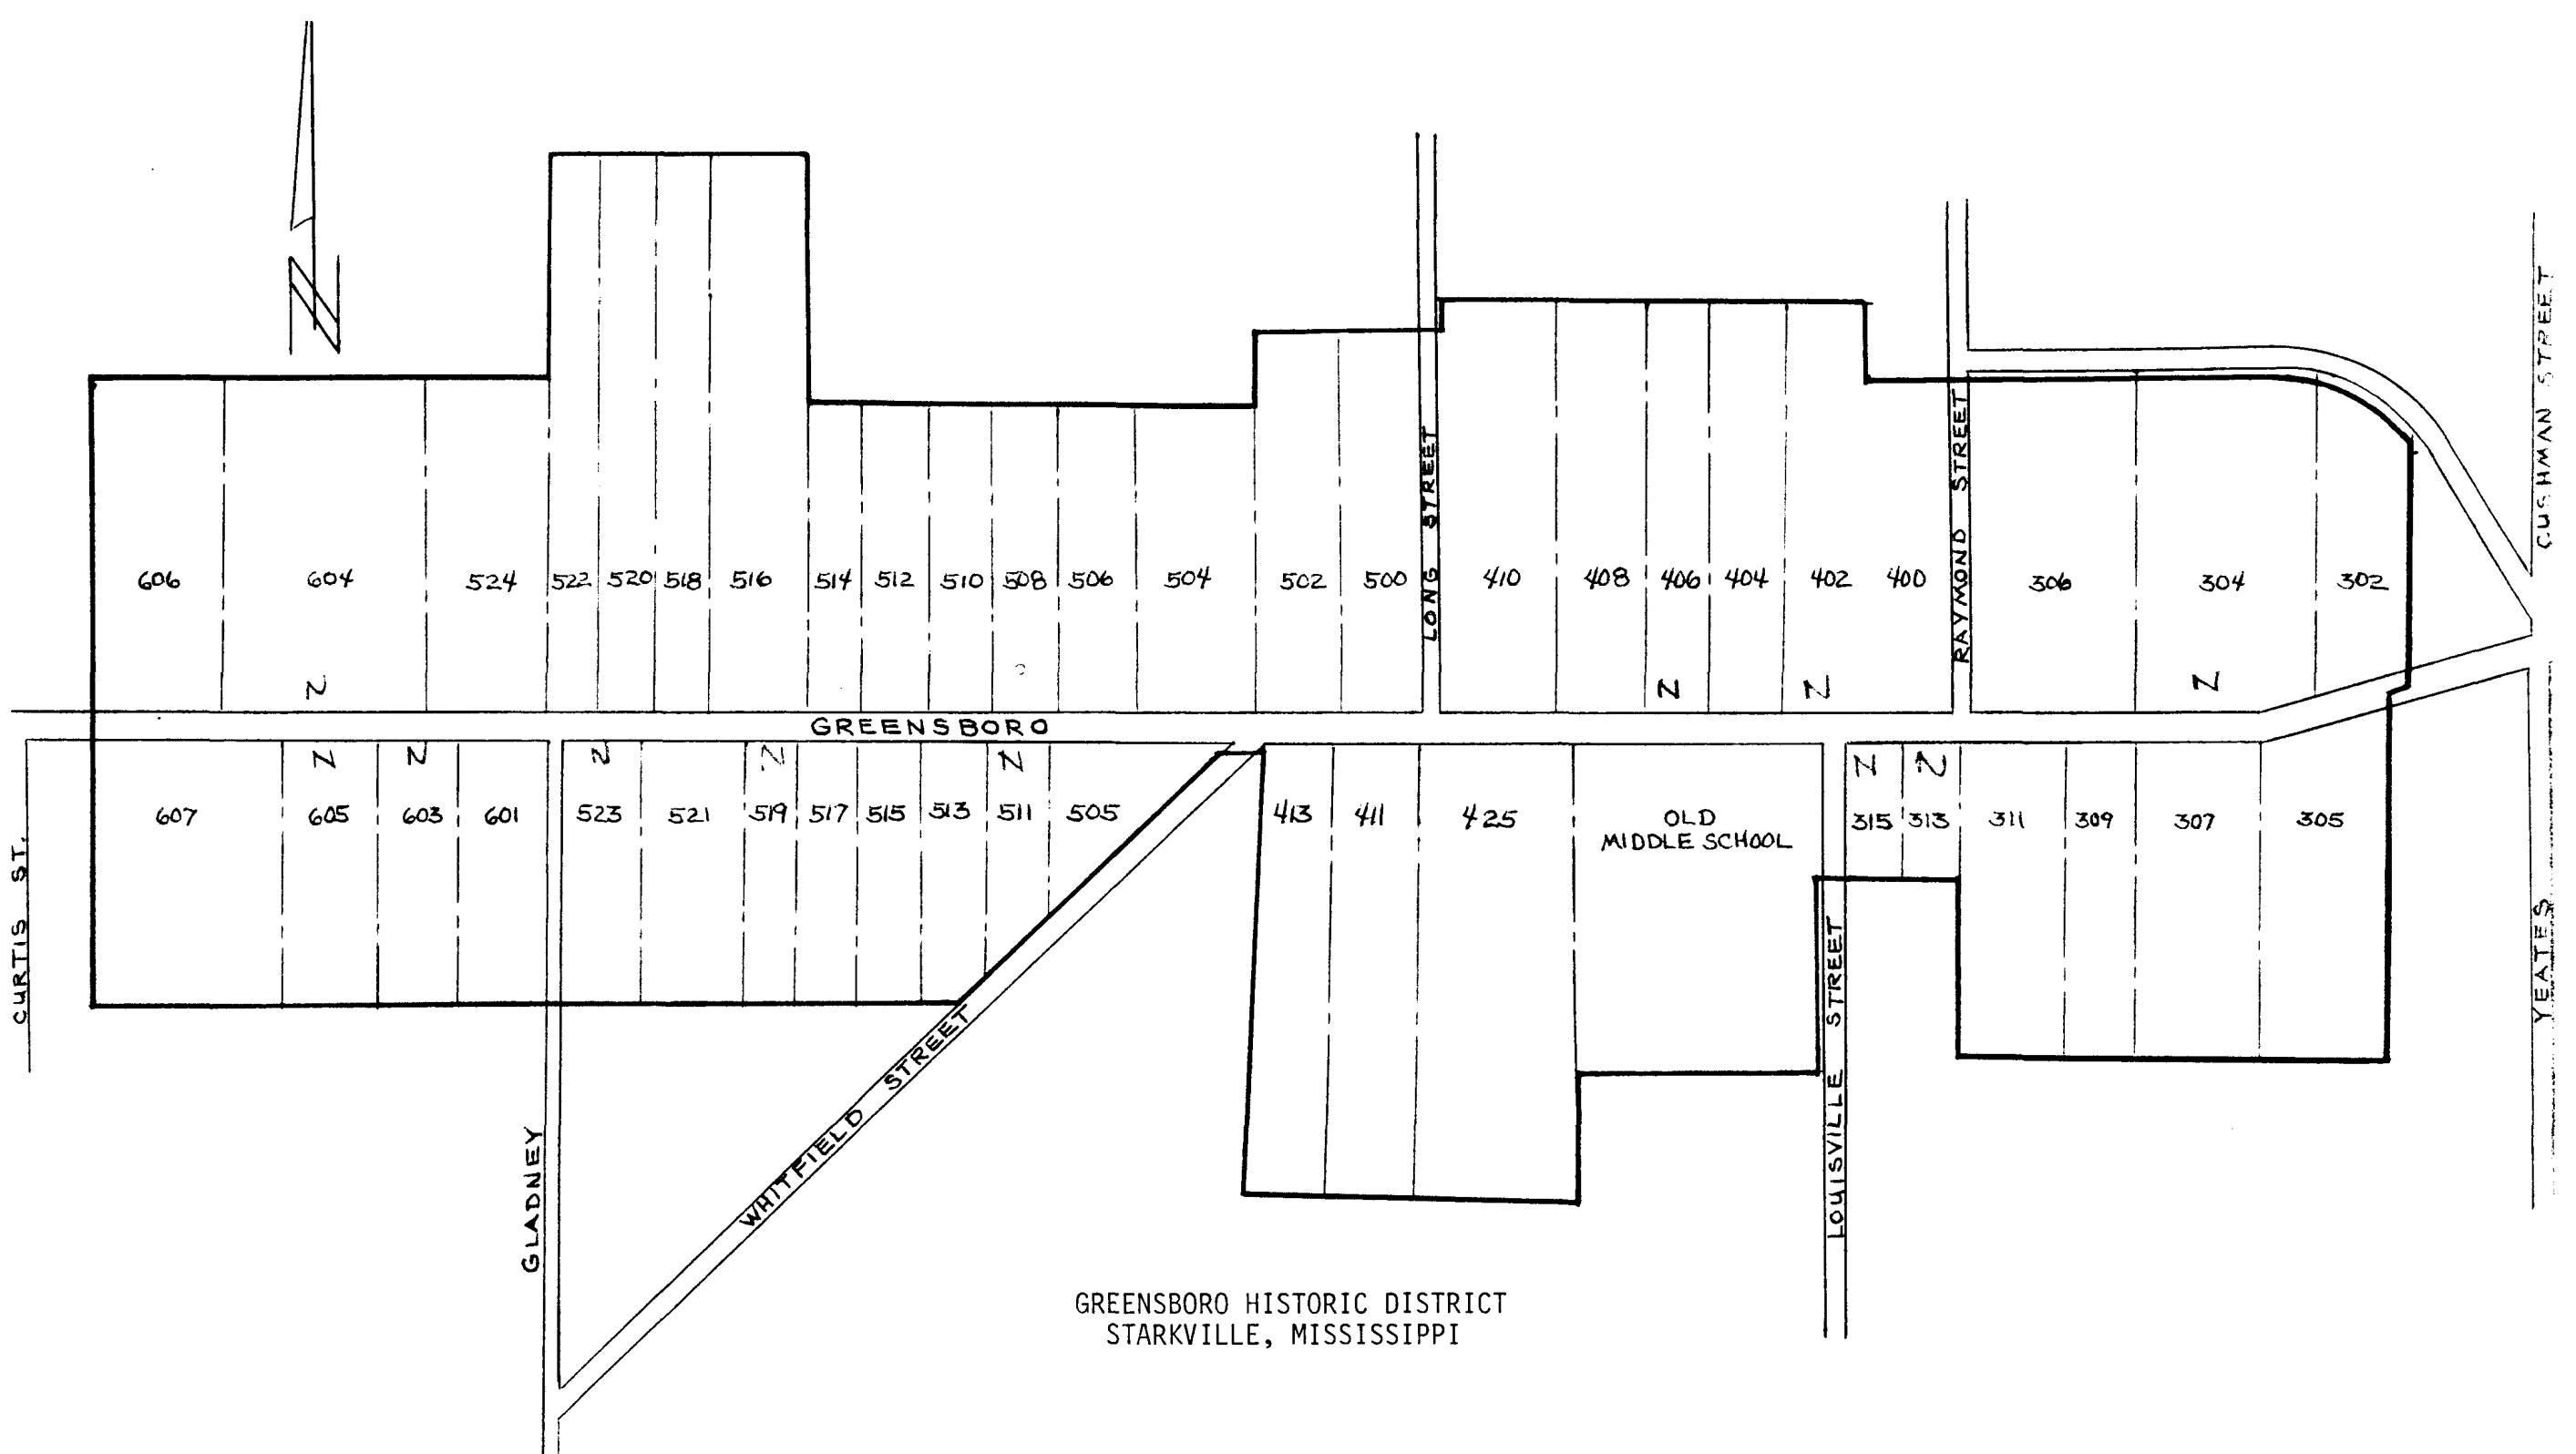 A diagram of the houses included in the Greensboro Street Historic District